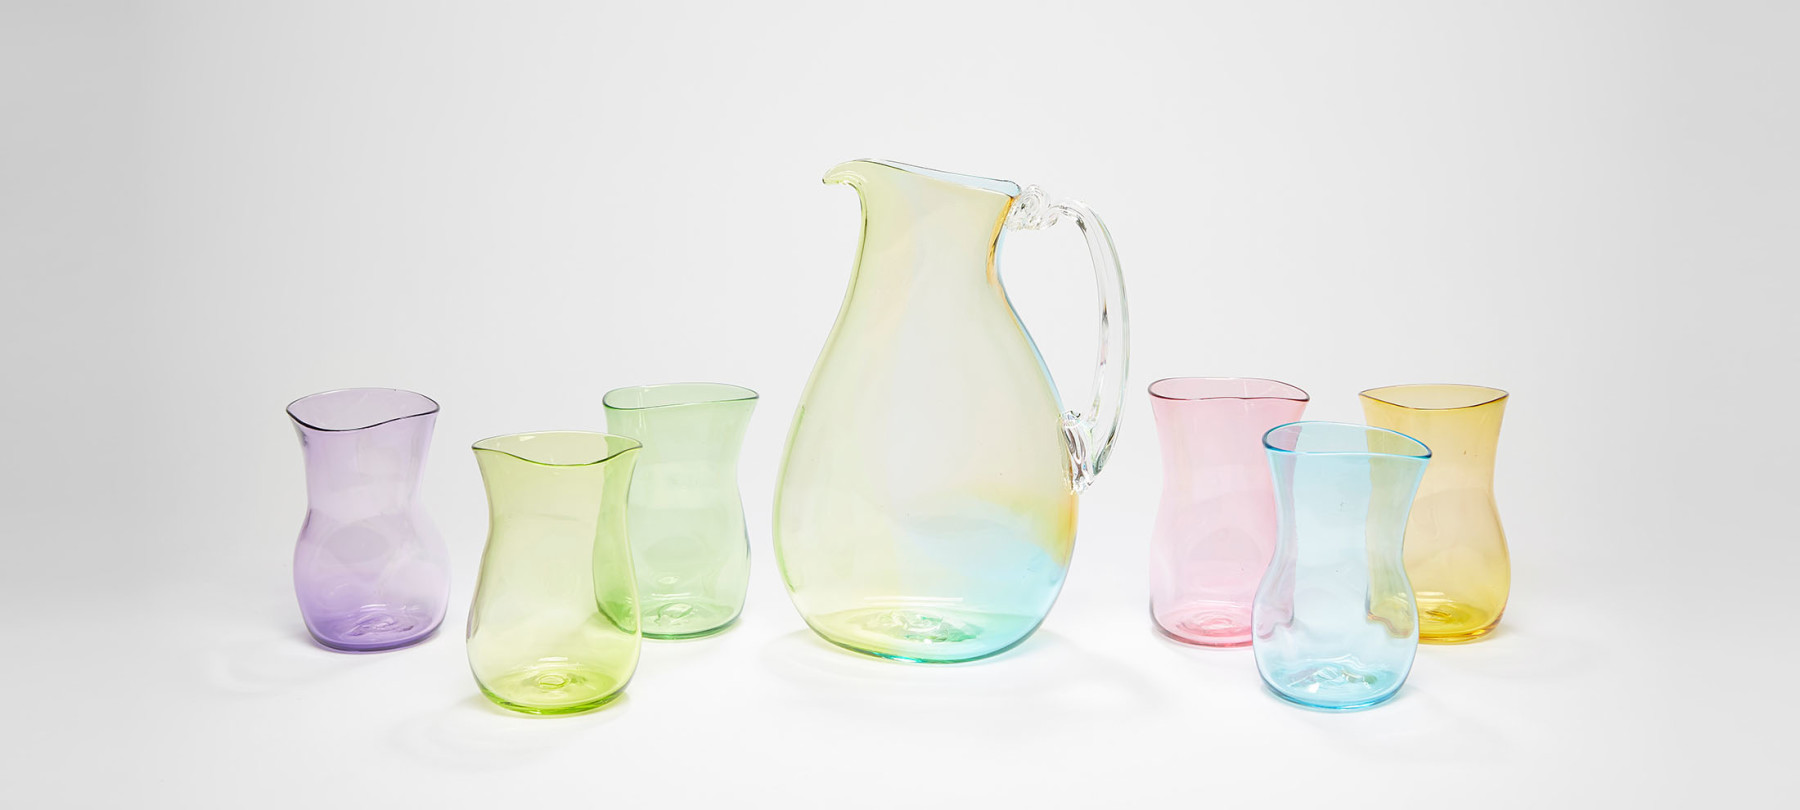 Layne Rowe Rainbow Jug with glasses